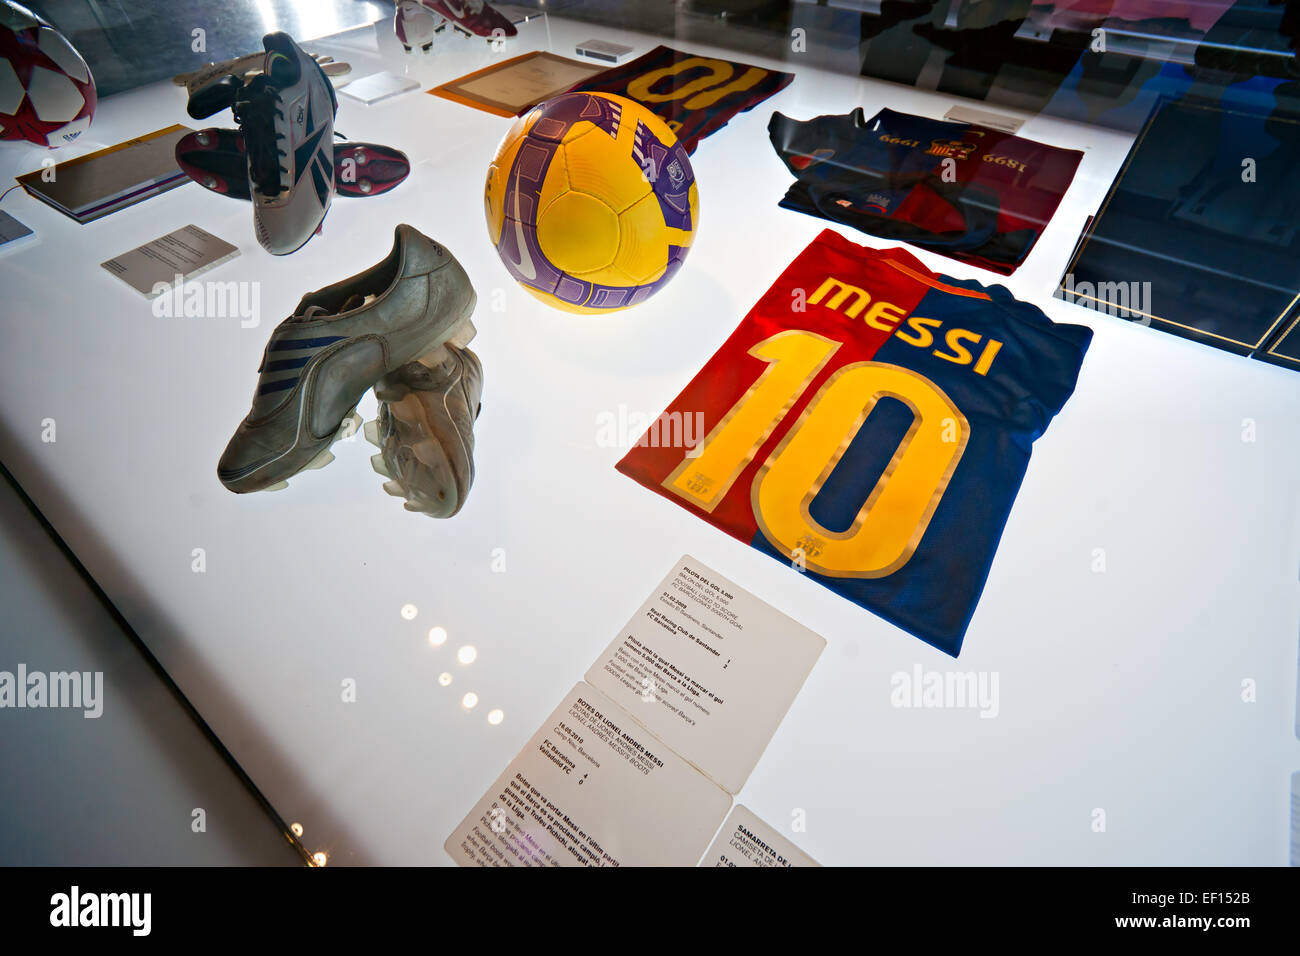 BARCELONA - SPAIN, DECEMBER 19: The FC Barcelona museum inaugurated on 24 September 1984.The museum occupies 3,500 - Stock Image